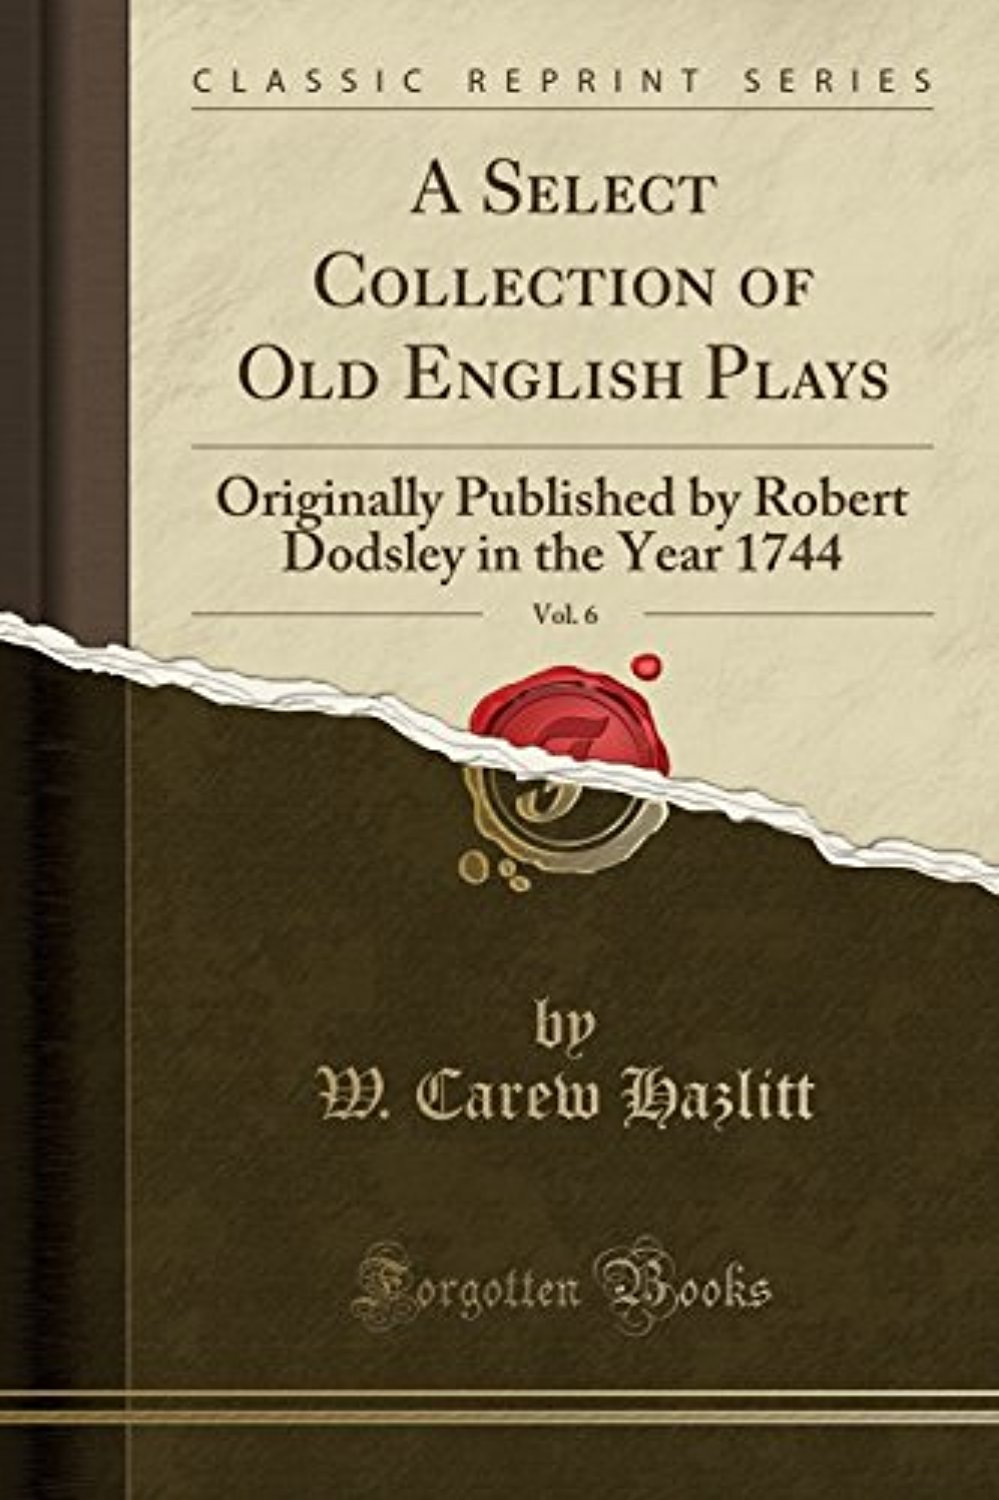 A Select Collection of Old English Plays, Vol. 6: Originally Published by Robert Dodsley in the Year 1744 (Classic Reprint)